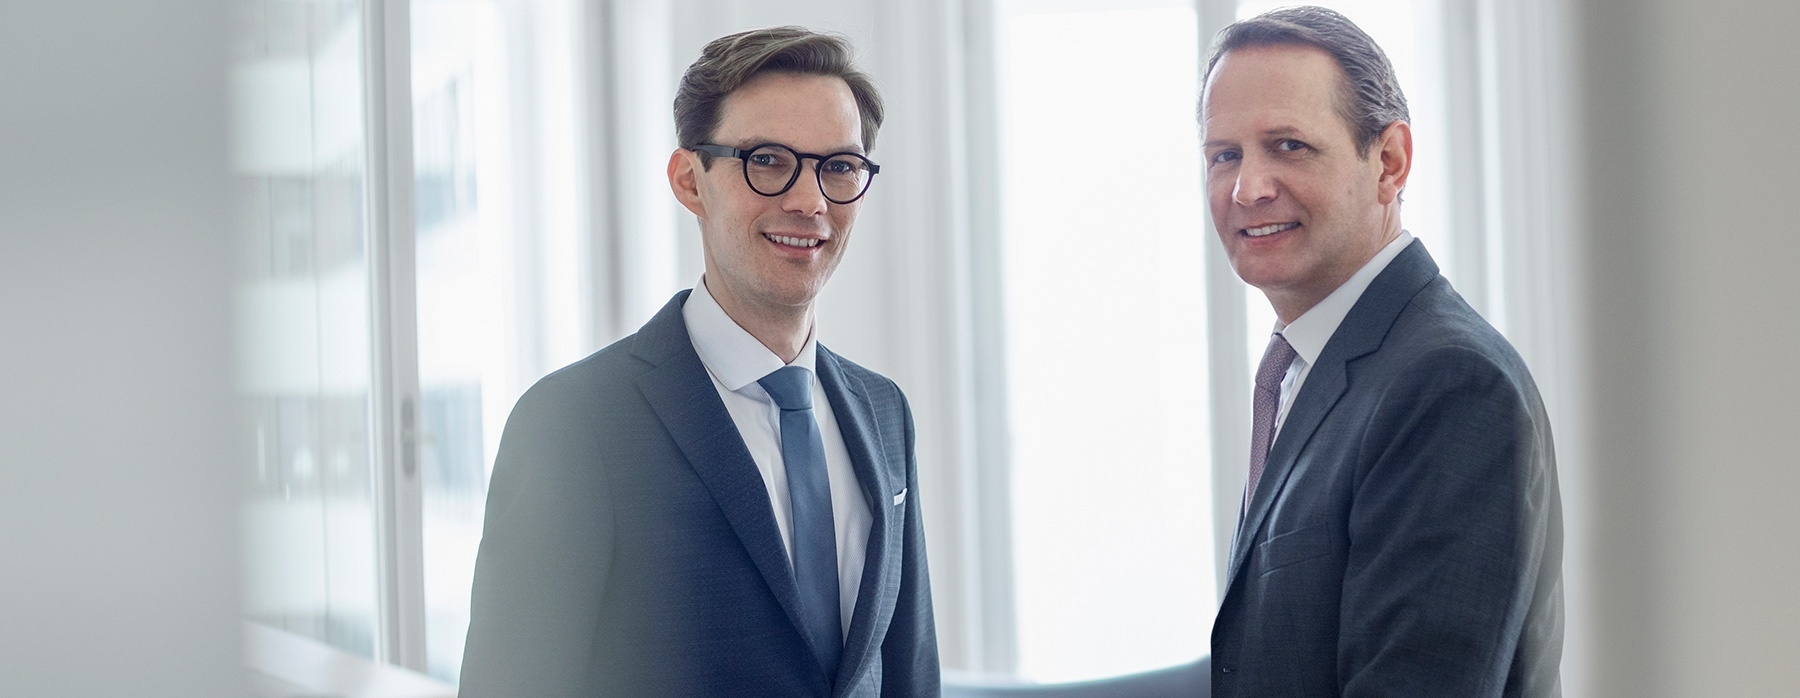 Gregor Gluttig, Andreas Tengler | Supply Chain Management Experts